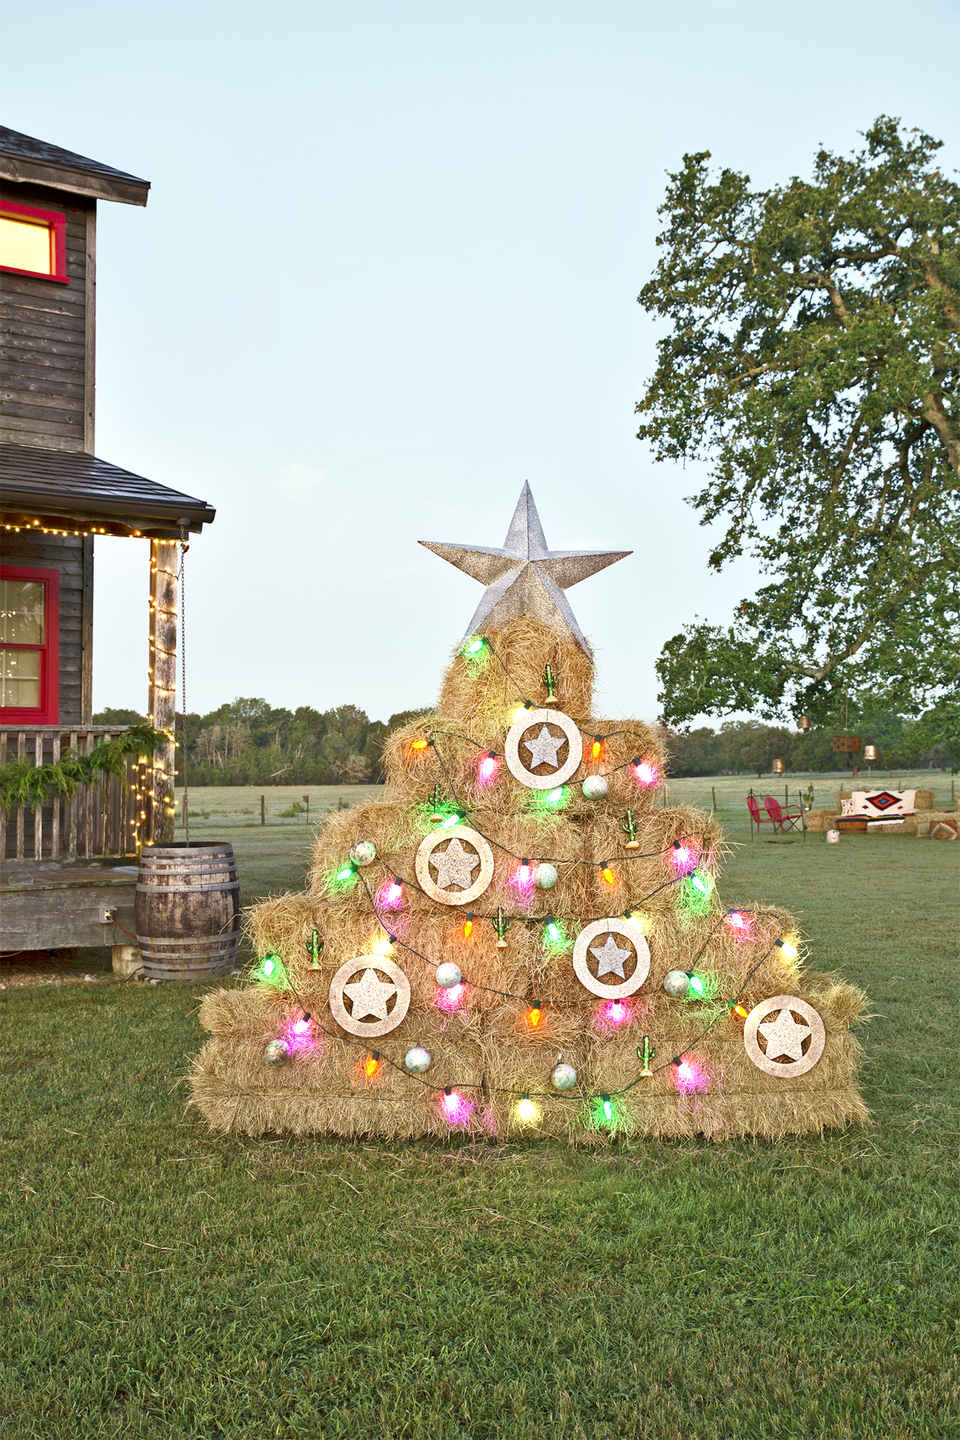 """<p>Draw some inspiration from the Junk Gypsies, who assembled this hay bale Christmas tree outside their <a href=""""https://www.countryliving.com/home-design/house-tours/g4931/junk-gypsies-texas-inn/"""" rel=""""nofollow noopener"""" target=""""_blank"""" data-ylk=""""slk:Wander Inn in Round Top, Texas"""" class=""""link rapid-noclick-resp"""">Wander Inn in Round Top, Texas</a>. Make your own by stacking straw and adorning it with lights, a star, and some ornaments.</p>"""